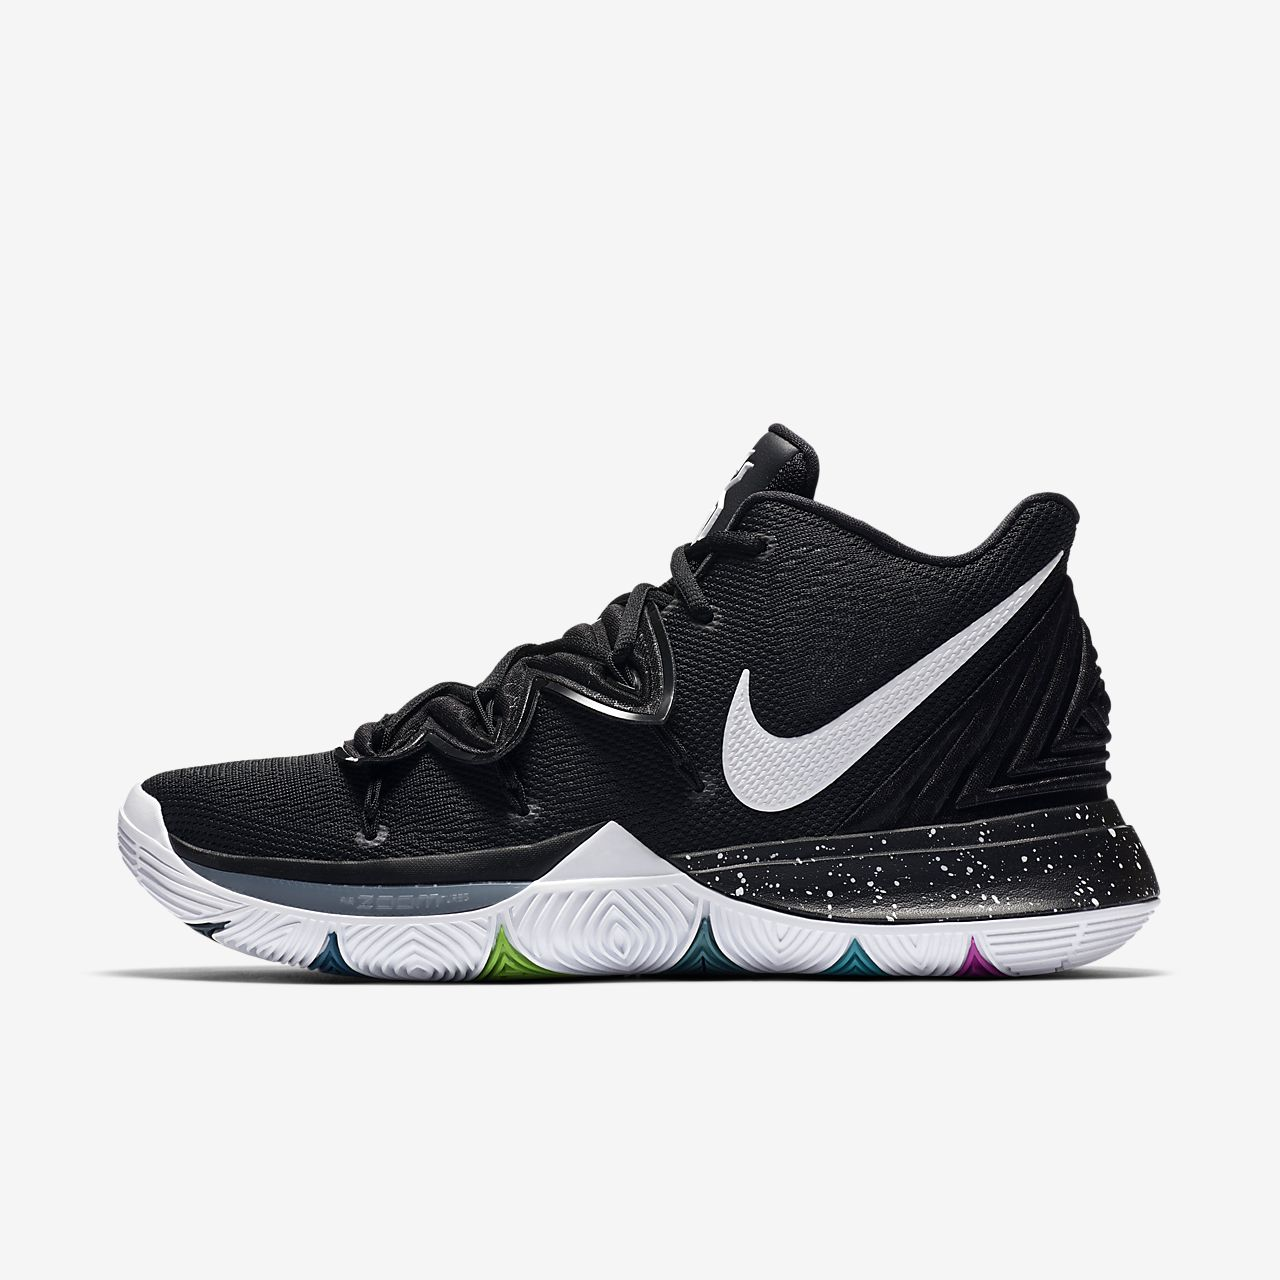 90dbe5be88d4 Low Resolution Kyrie 5 Shoe Kyrie 5 Shoe